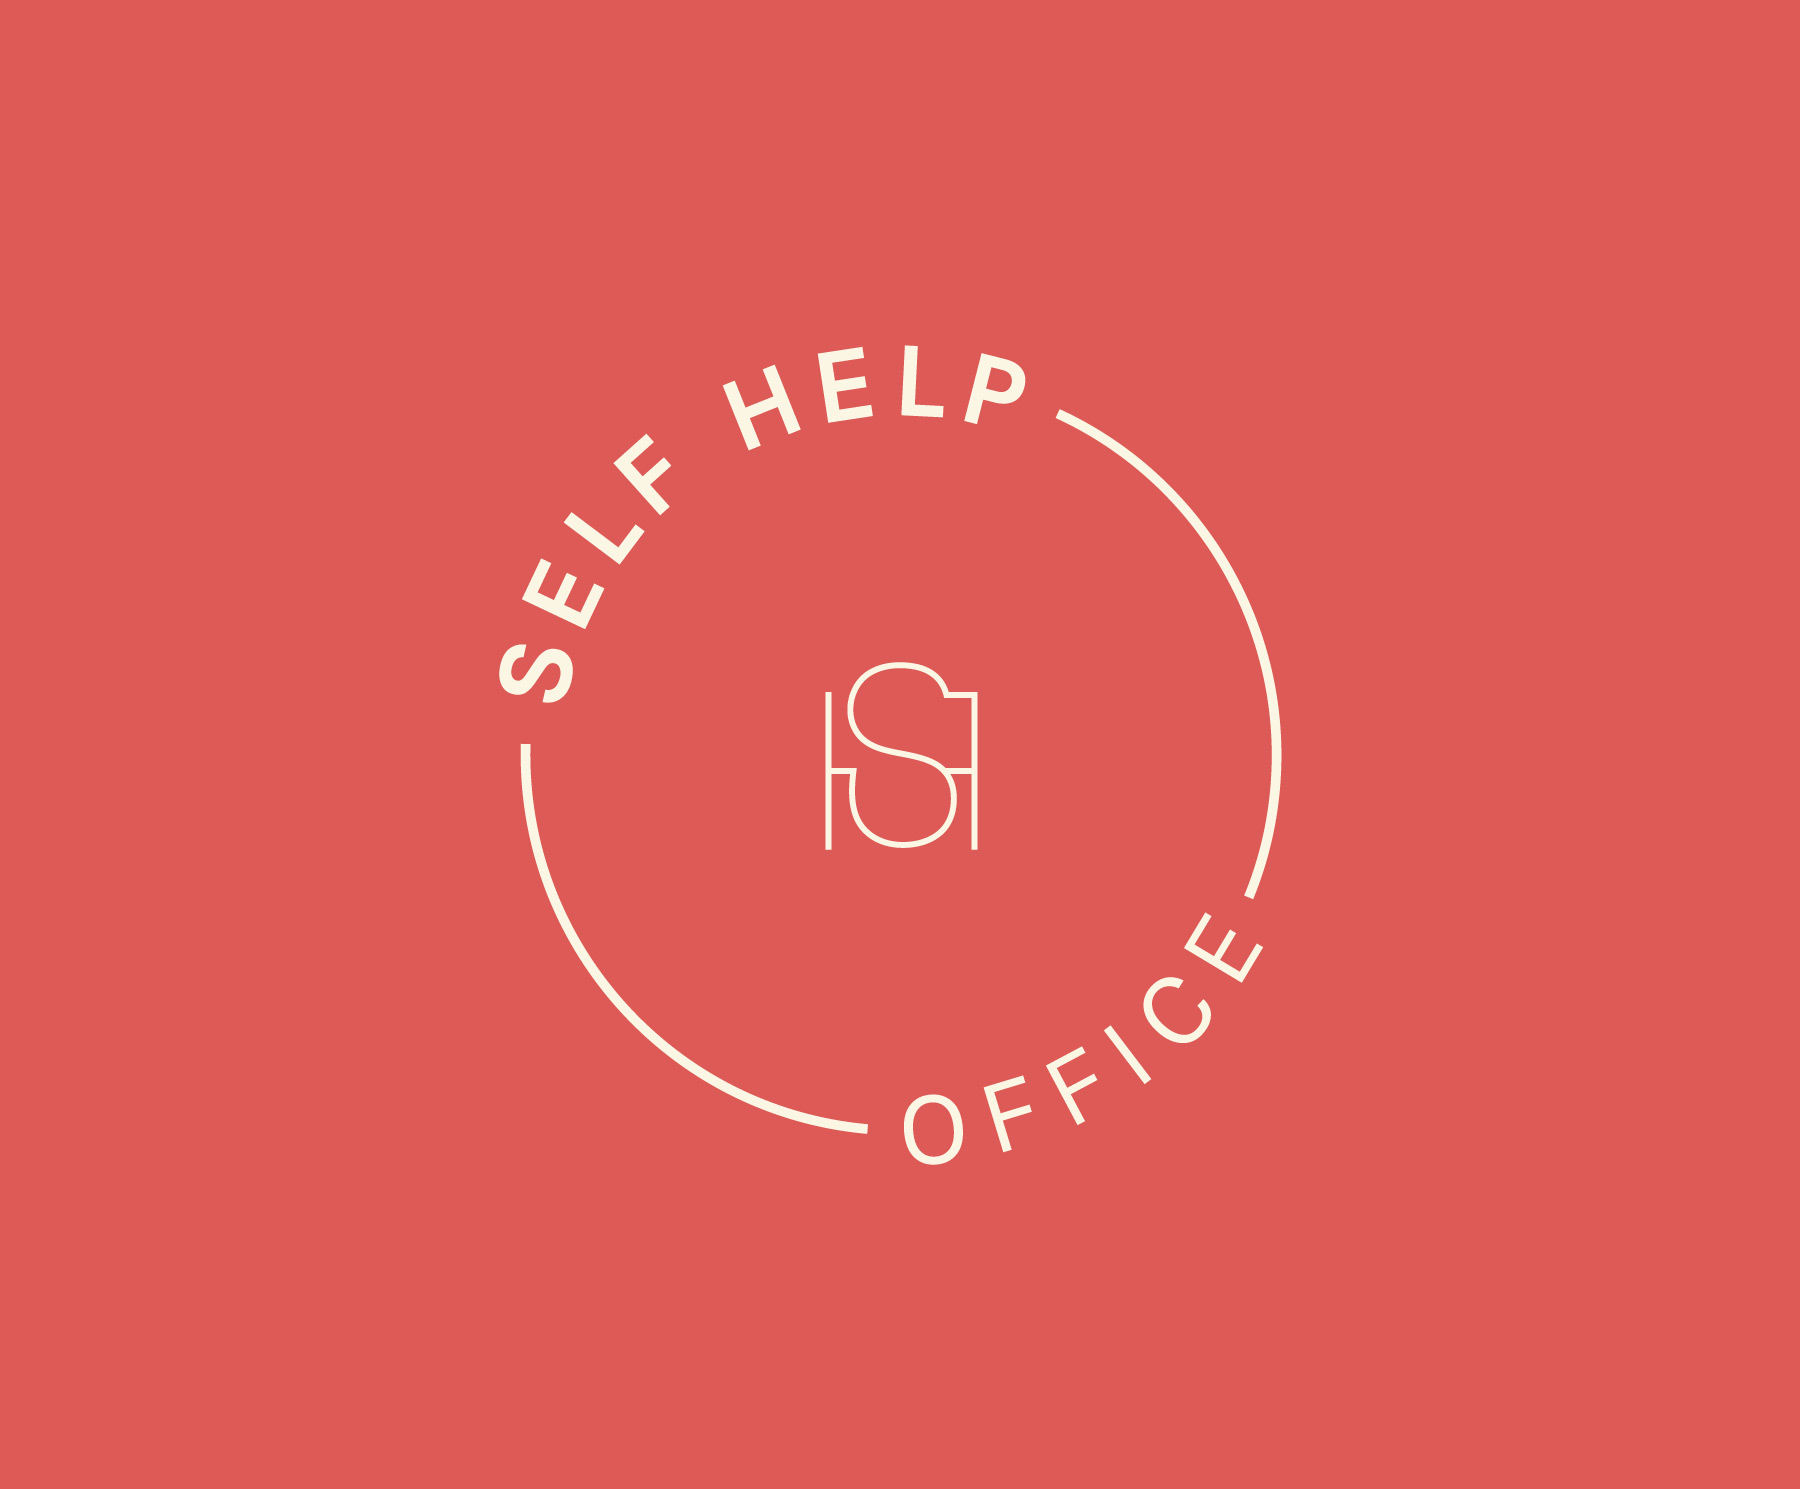 Self-Help-Office_accent-color-logo.jpg